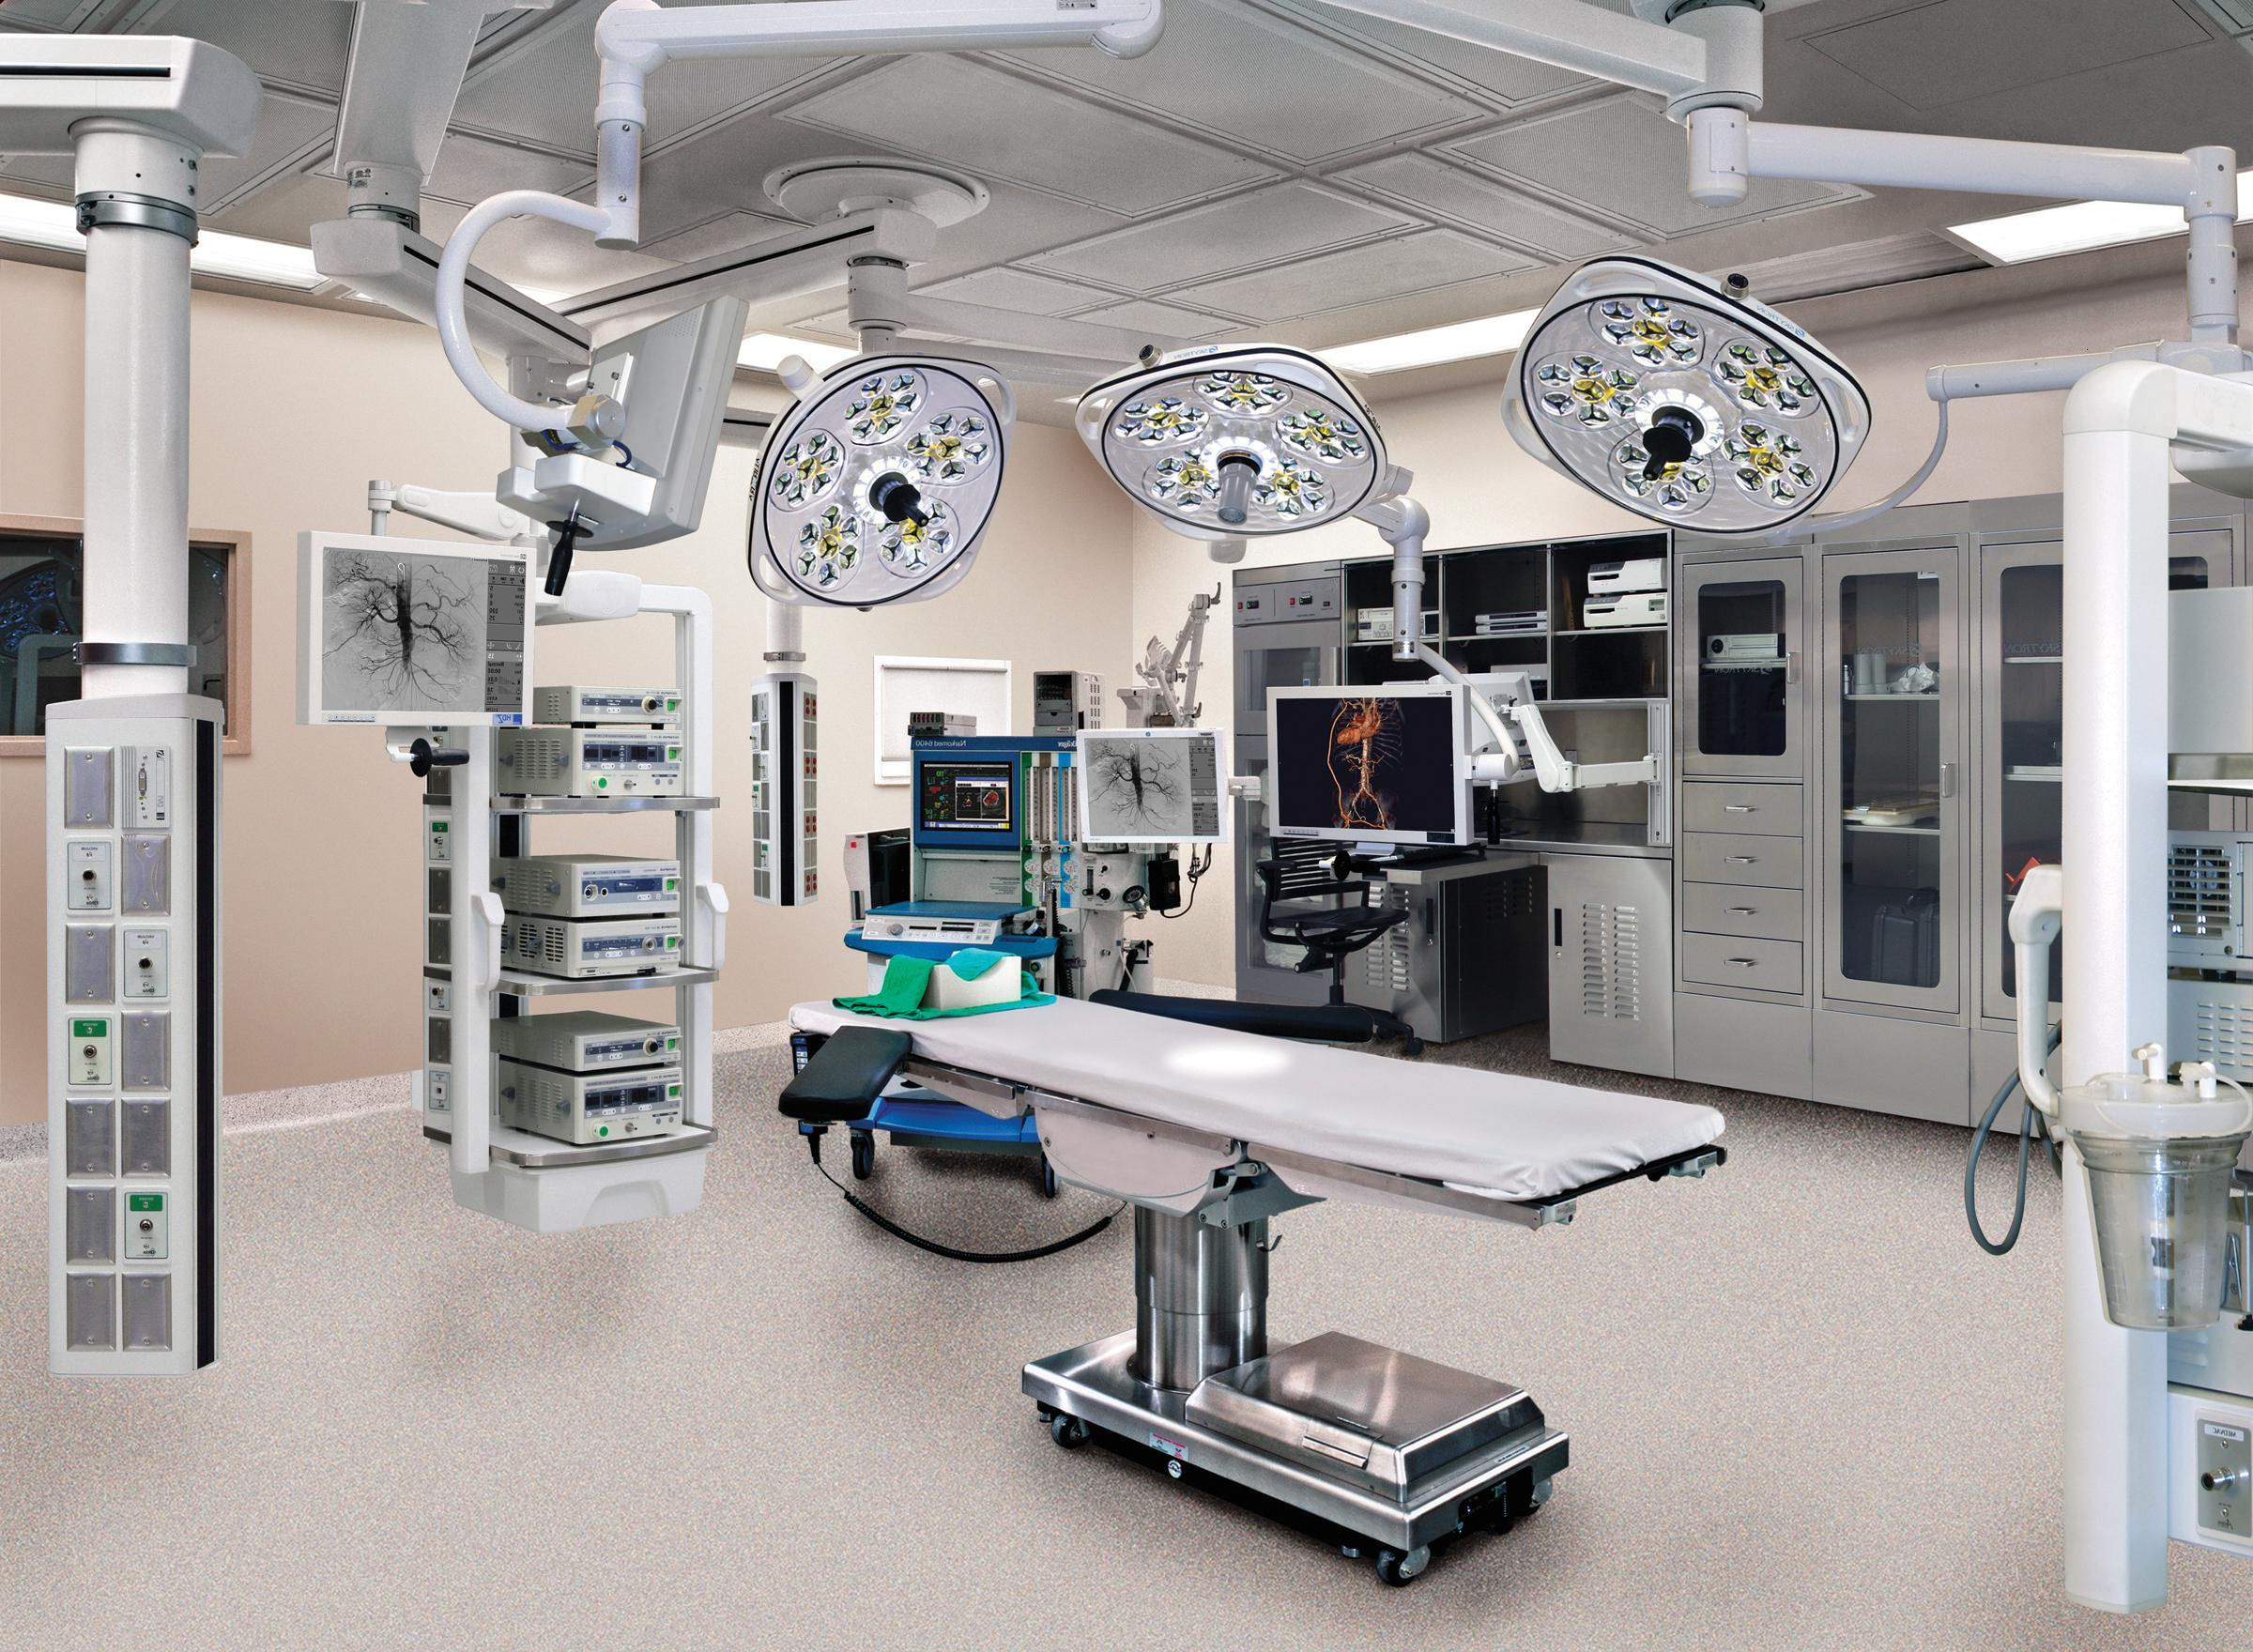 south afr operating theatres - HD2400×1760